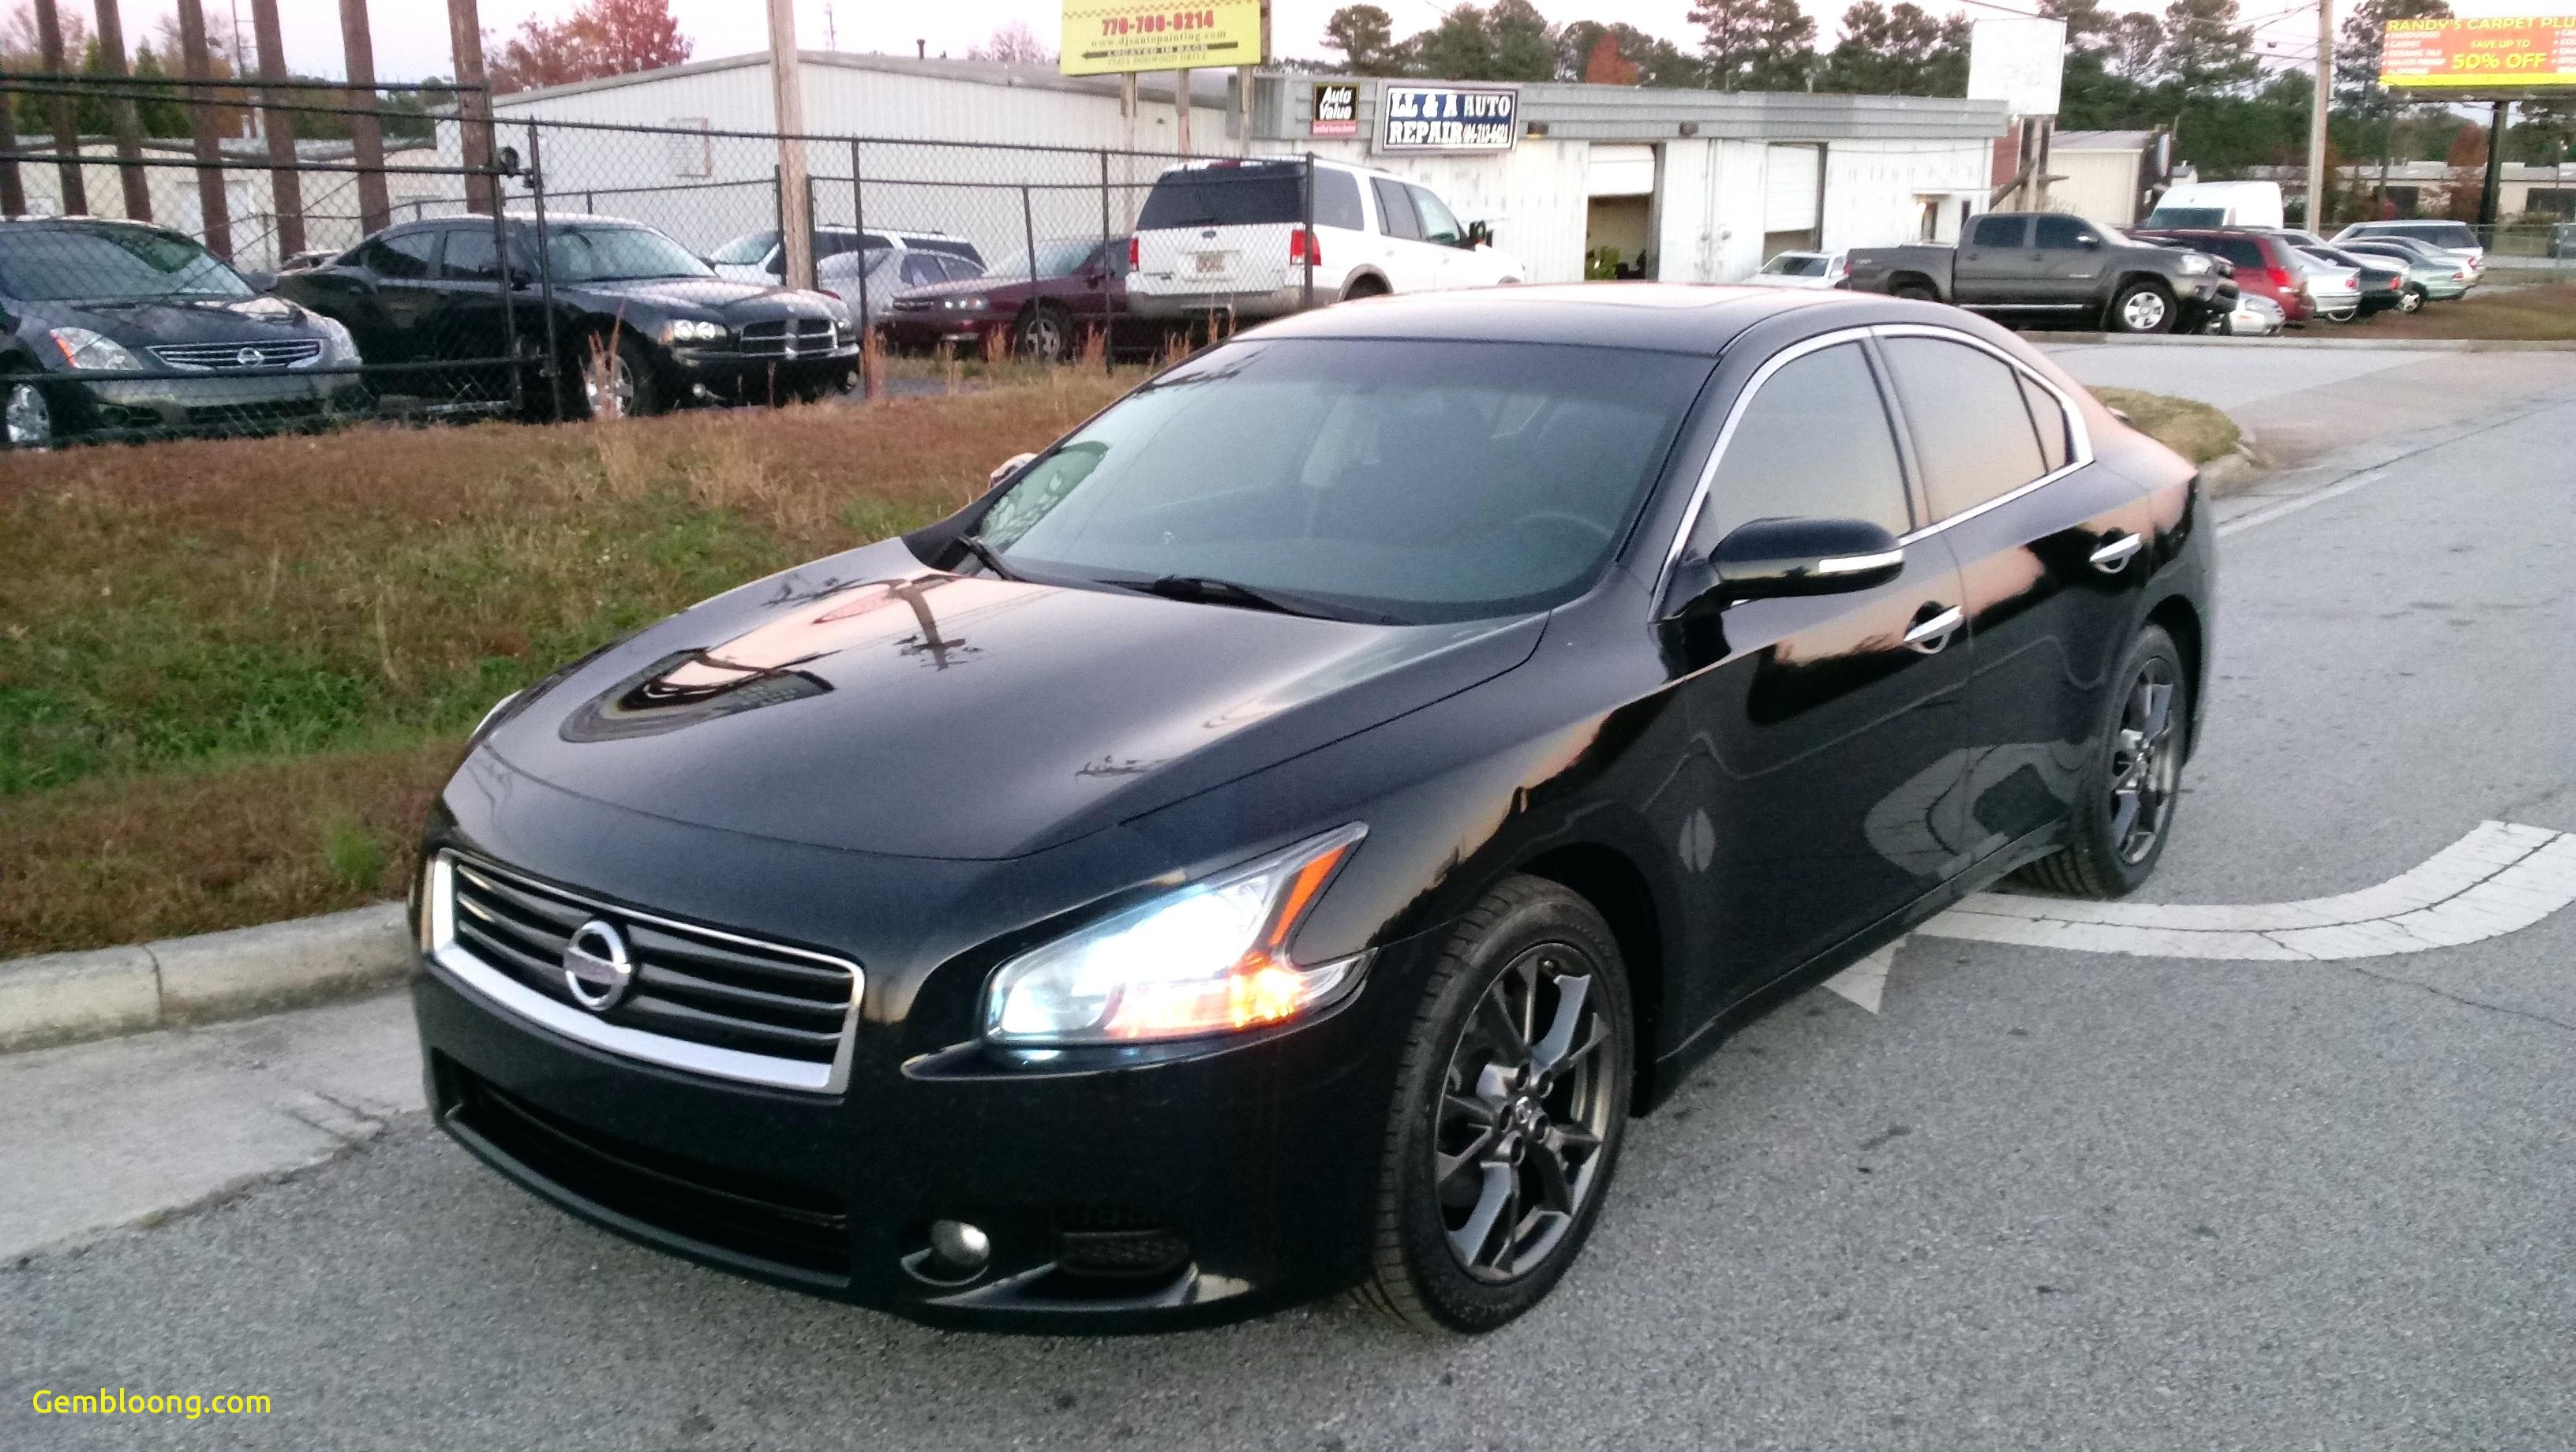 Inexpensive Used Cars for Sale Beautiful Good Used Cars Near Me Best Of Luxury Good Cars for Sale